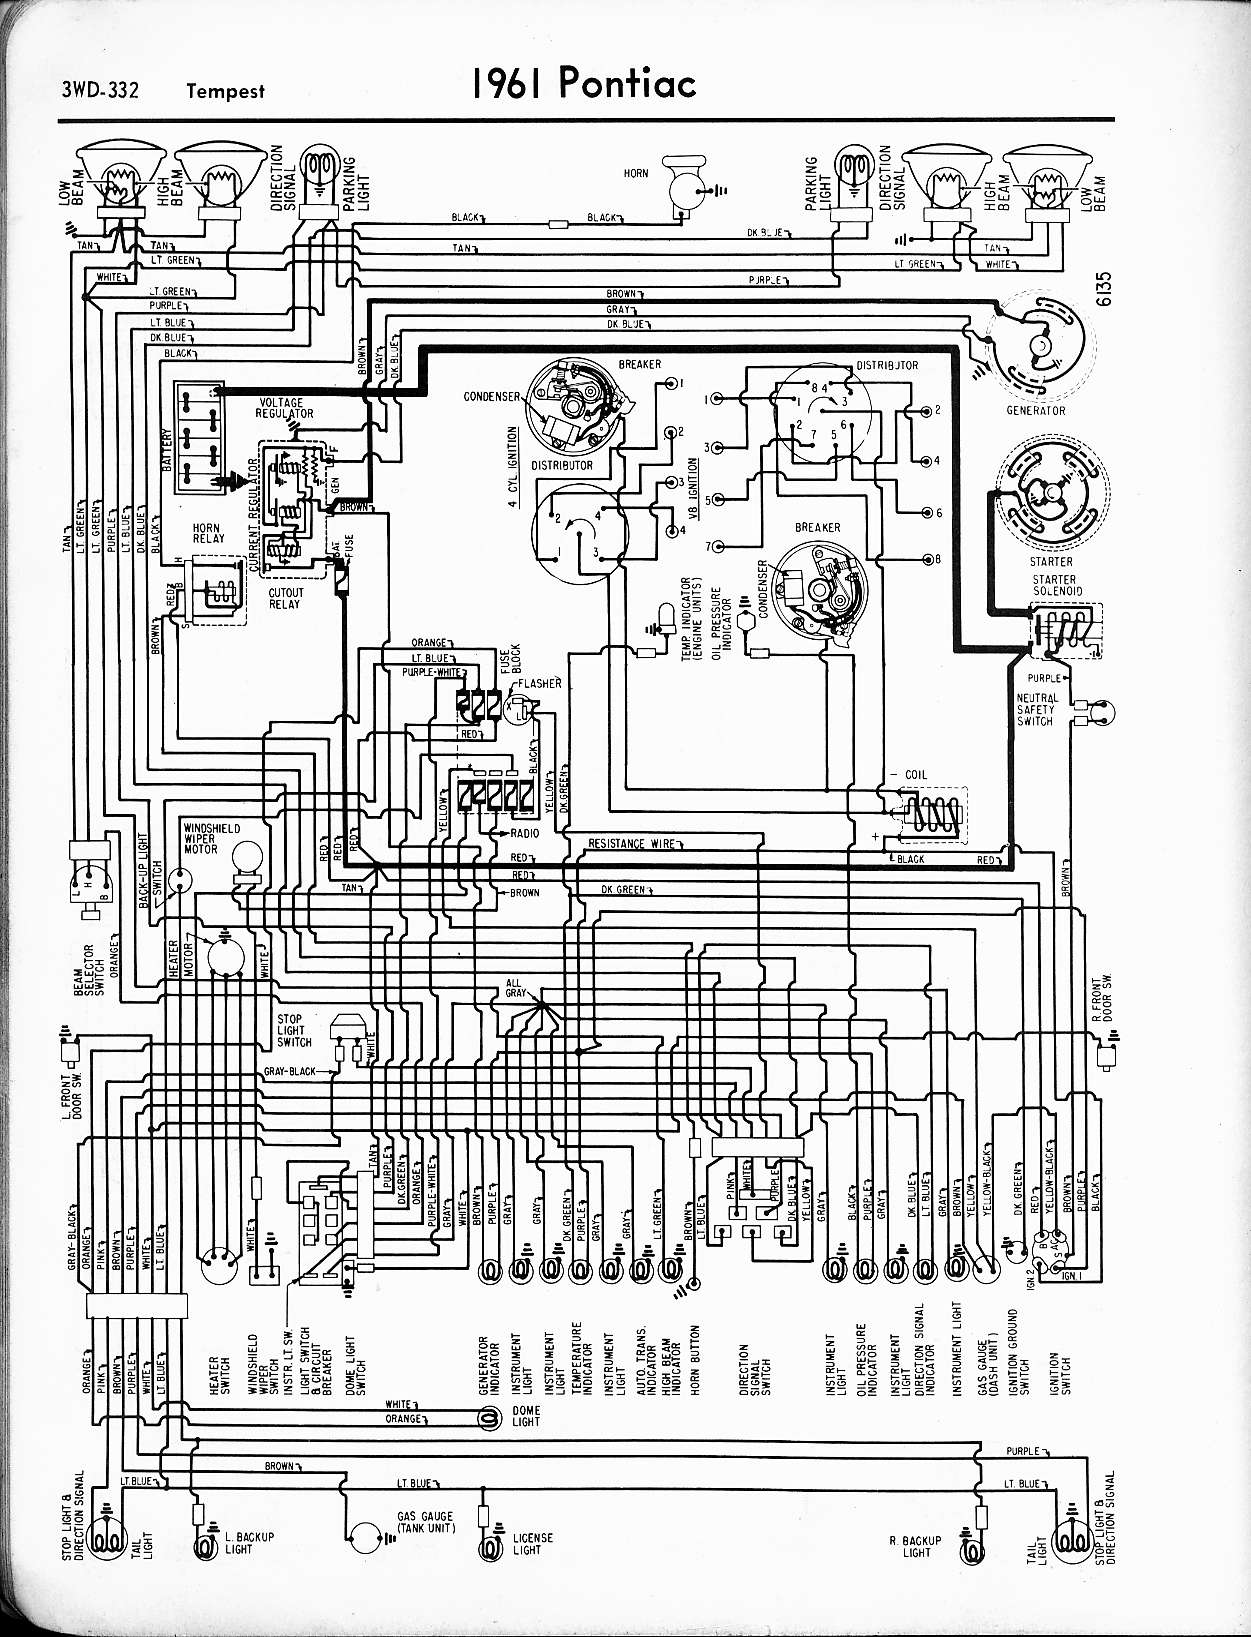 Tremendous 1964 Chevelle Wiring Diagram Diagram Data Schema Wiring Digital Resources Bioskbiperorg